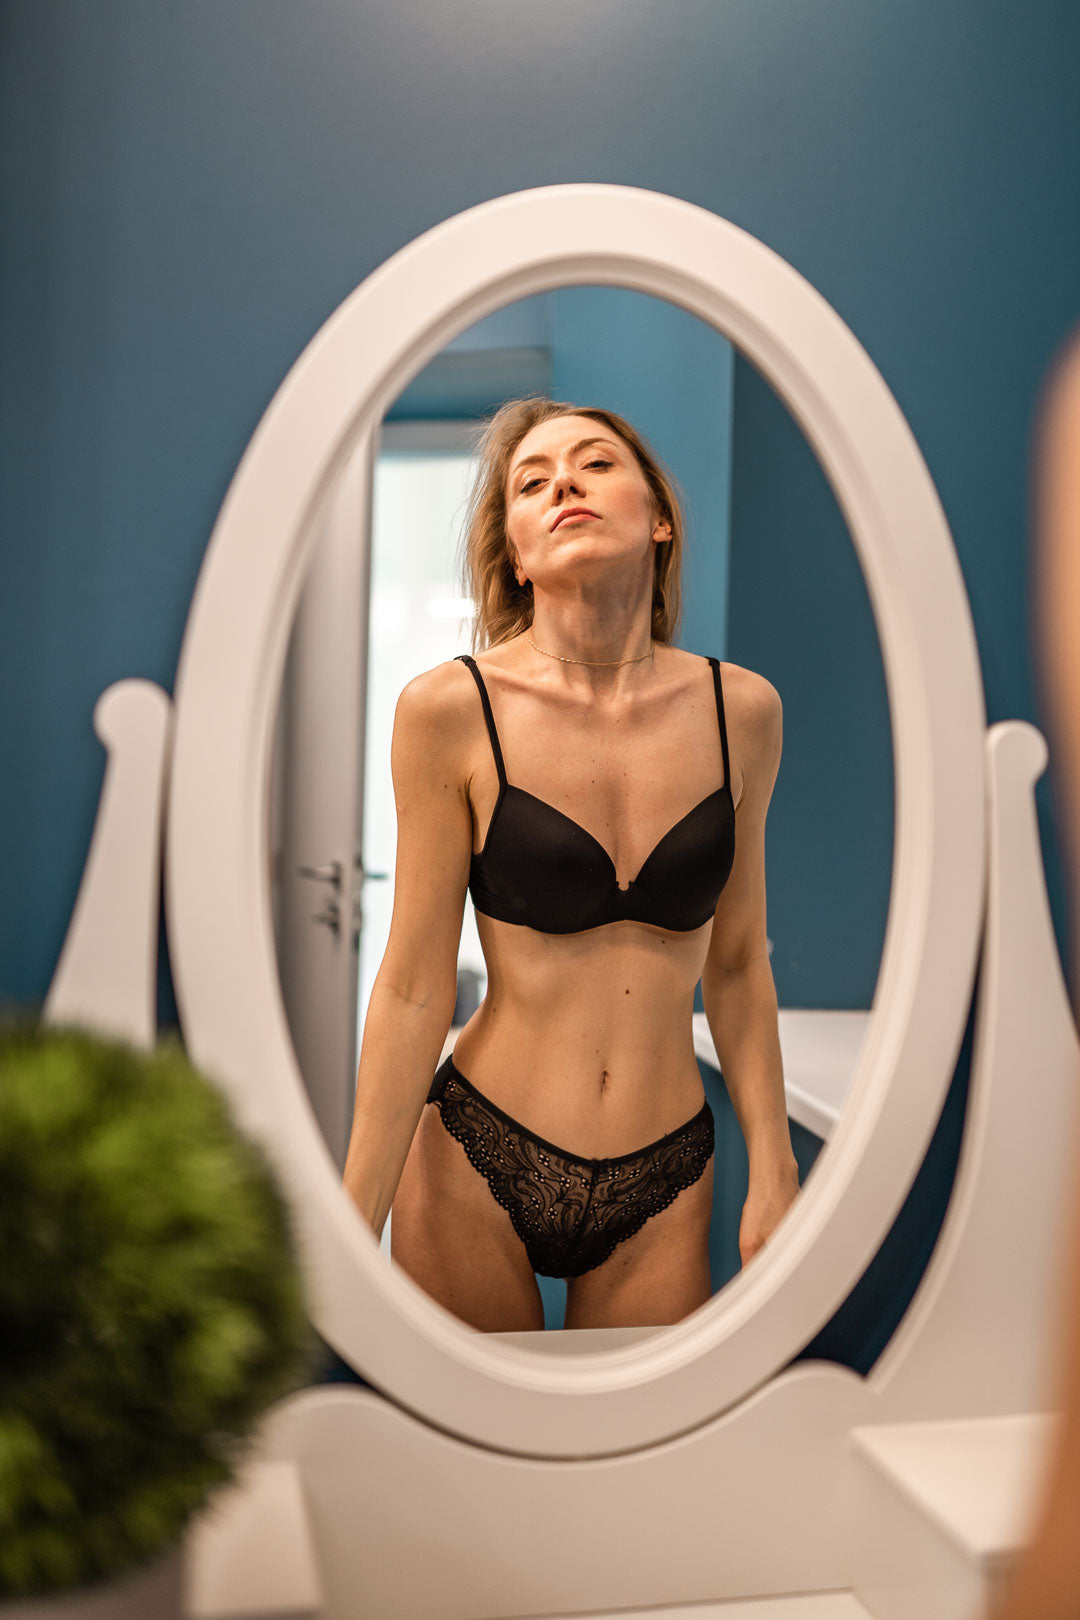 Mirror reflection of a woman in black lingerie